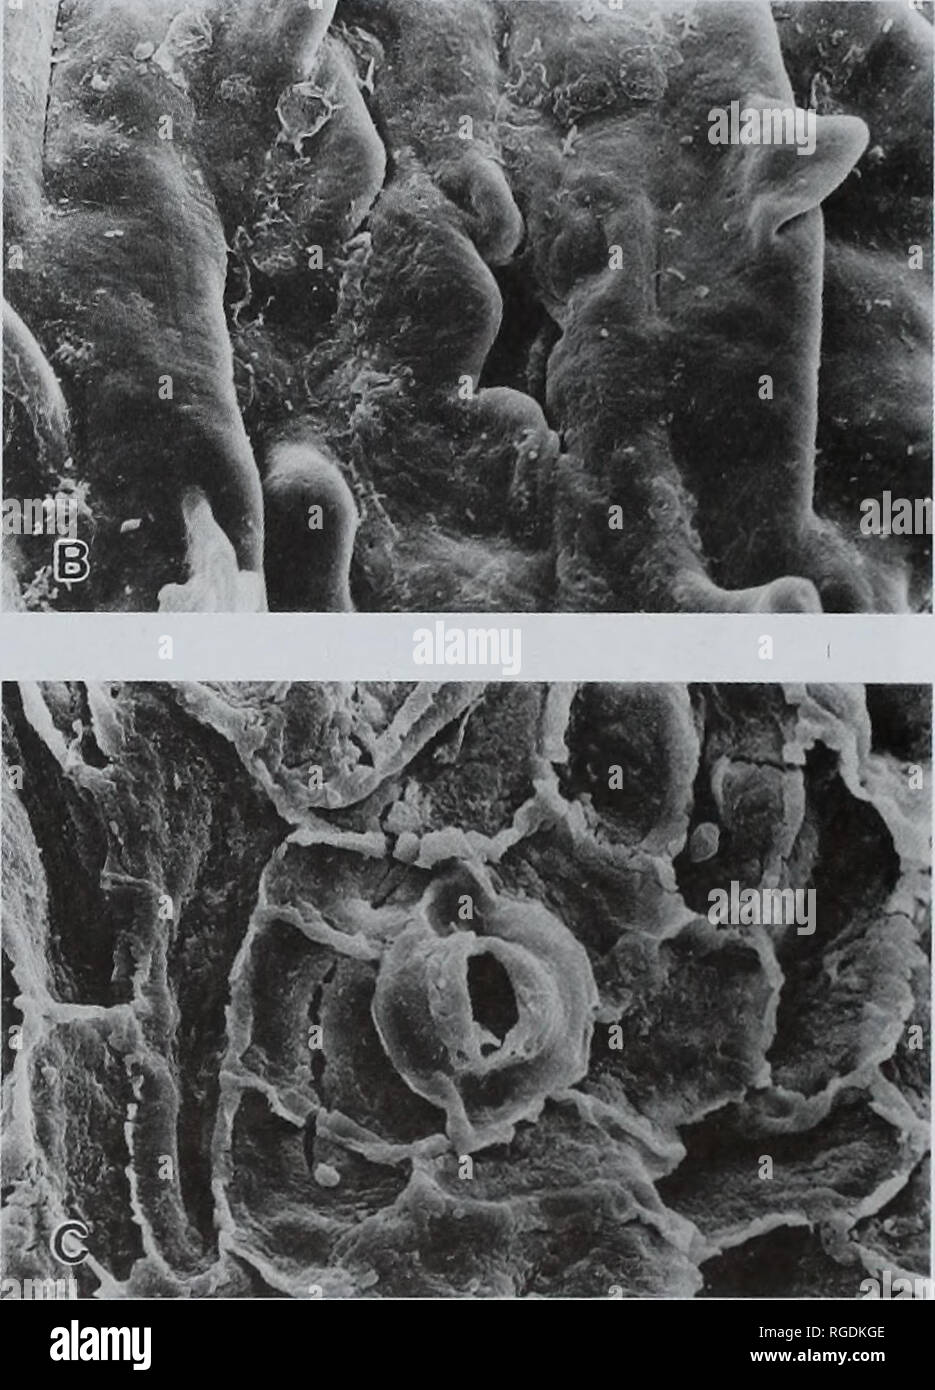 . Bulletin of the Natural Histort Museum. Geology series. Fig. 17 A-B Ginkgoires garlickianiis sp. nov. A, distribution and orientation of stomata on lower surface; B, distribution and orientation of stomata on upper surface; both from holotype, V.64548, x 50. Bay. However, the stomata of C. anguae are strictly longitudinally orientated on both surfaces, are arranged in files rather than scat- tered, are never papillate and have 2 distinct polar subsidiary cells. Amongst Lower Cretaceous floras from elsewhere the two species Ginkgoites brauniana (Dunker) from the Lower Cretaceous of Ger- many  - Stock Image